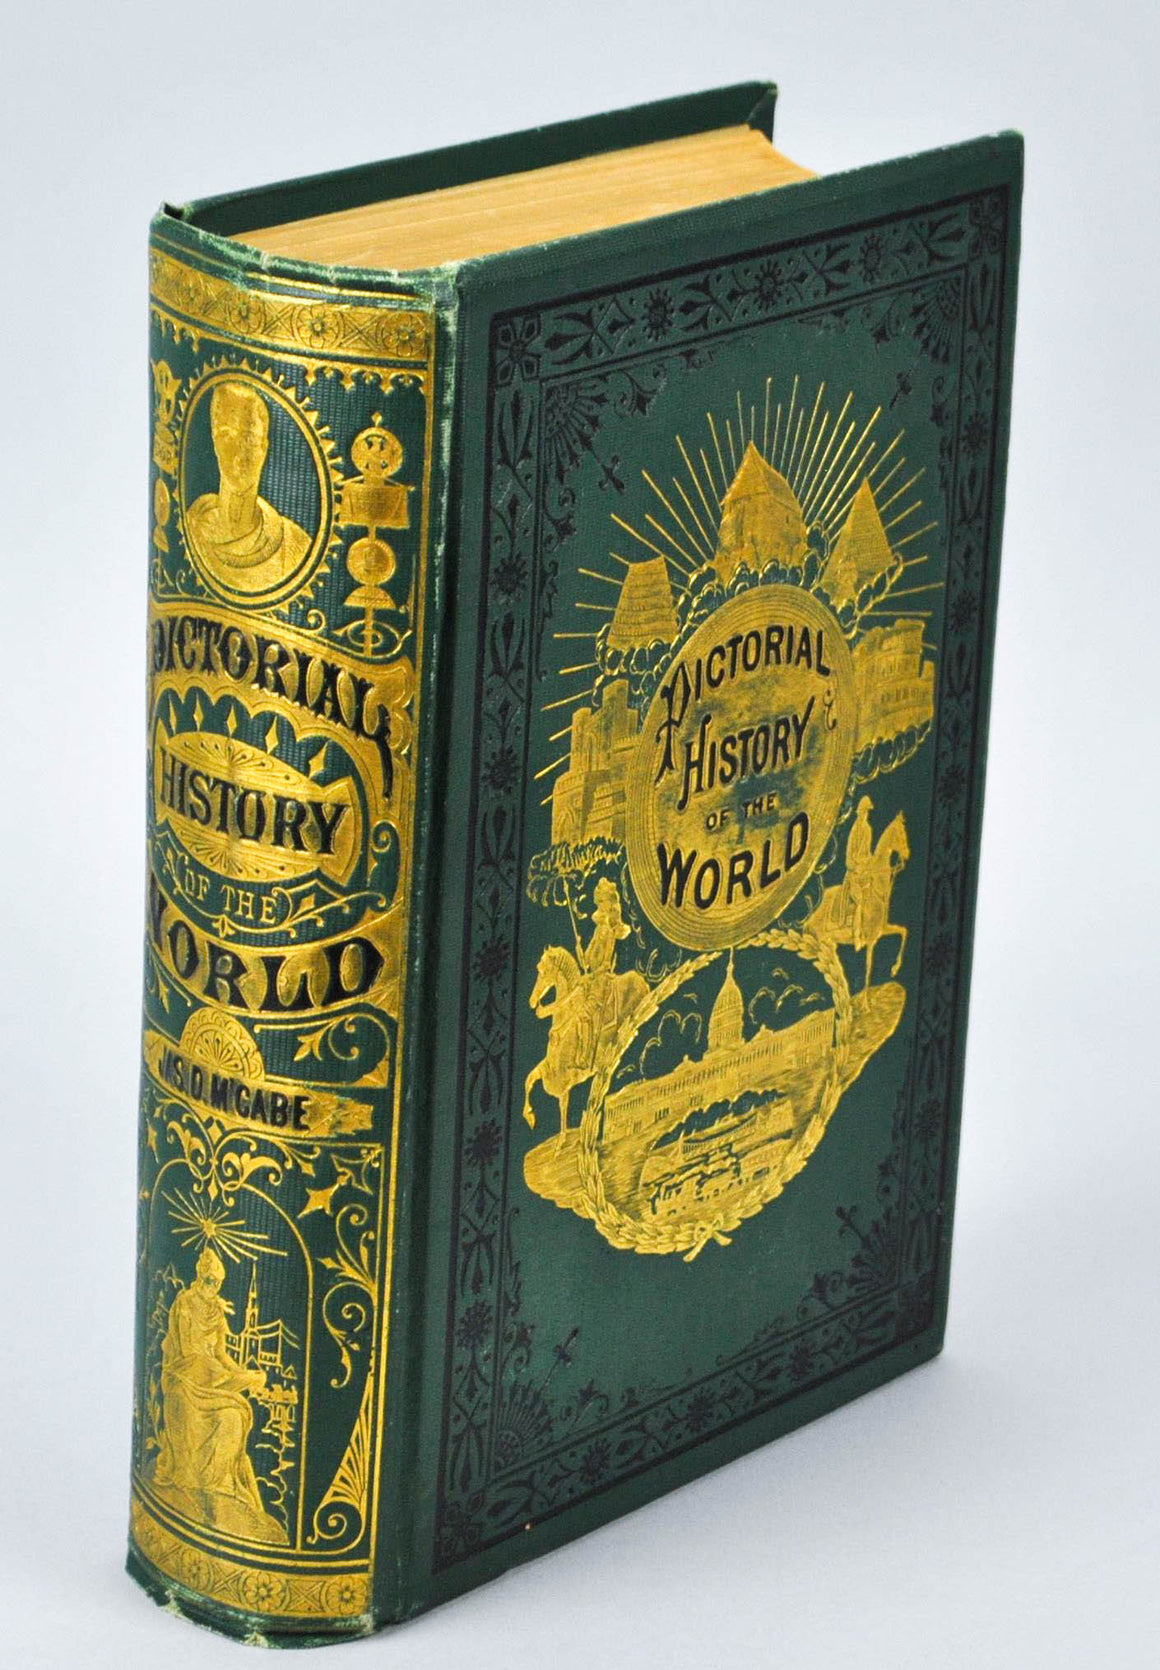 The Pictorial History of the World by James D McCabe 1877